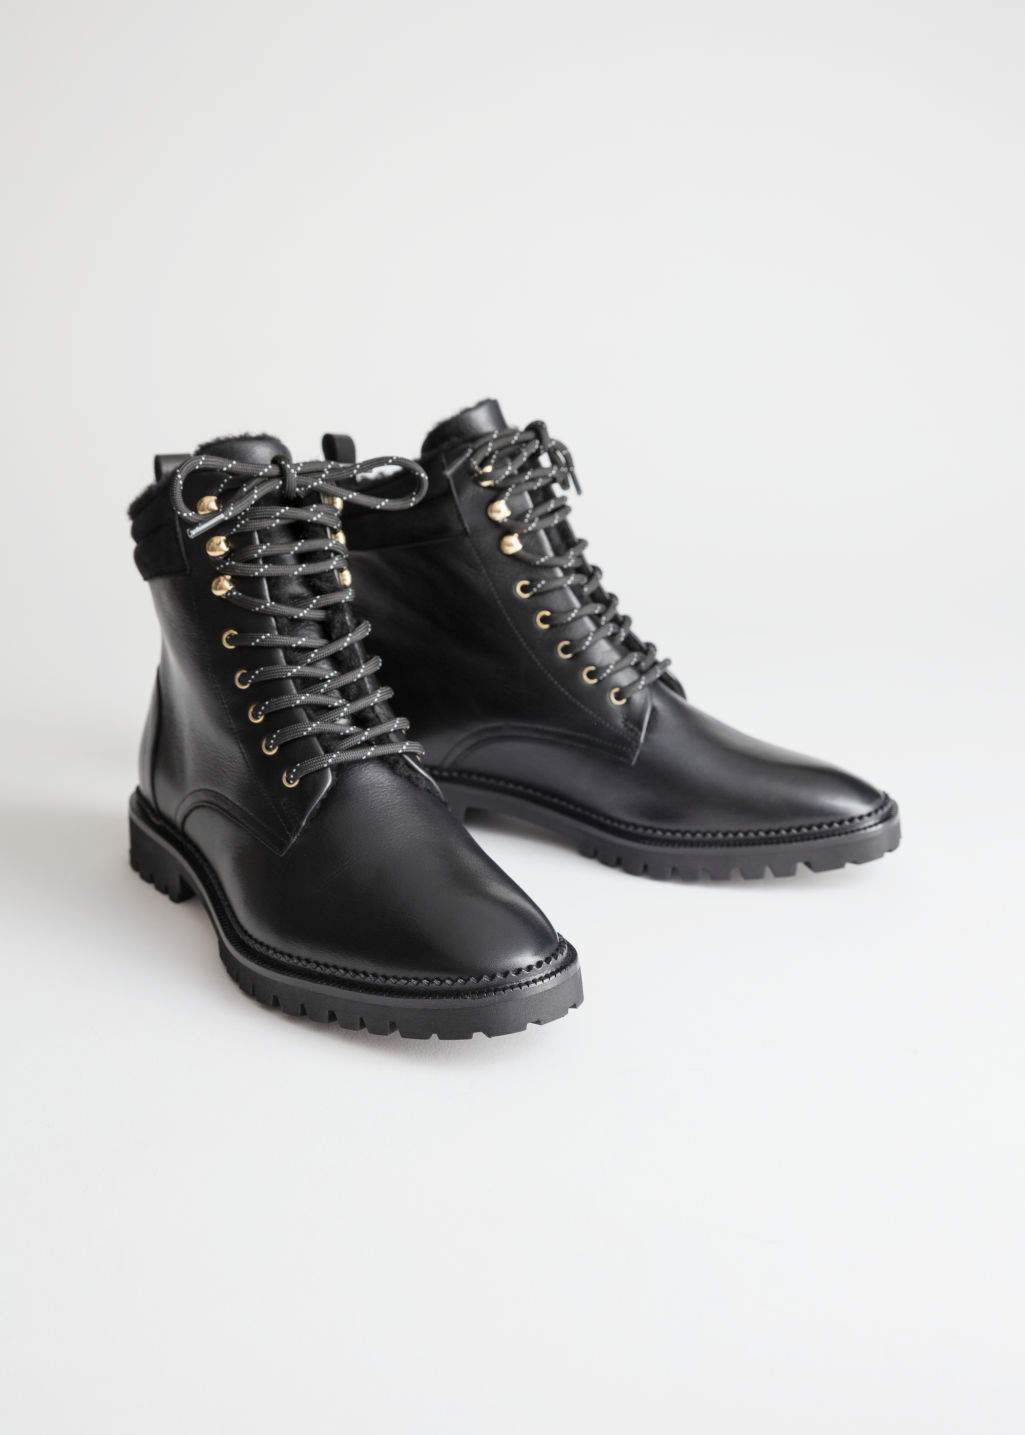 Leather Lace Up Snow Boots - Black - Ankleboots -   Other Stories f258a8c51834